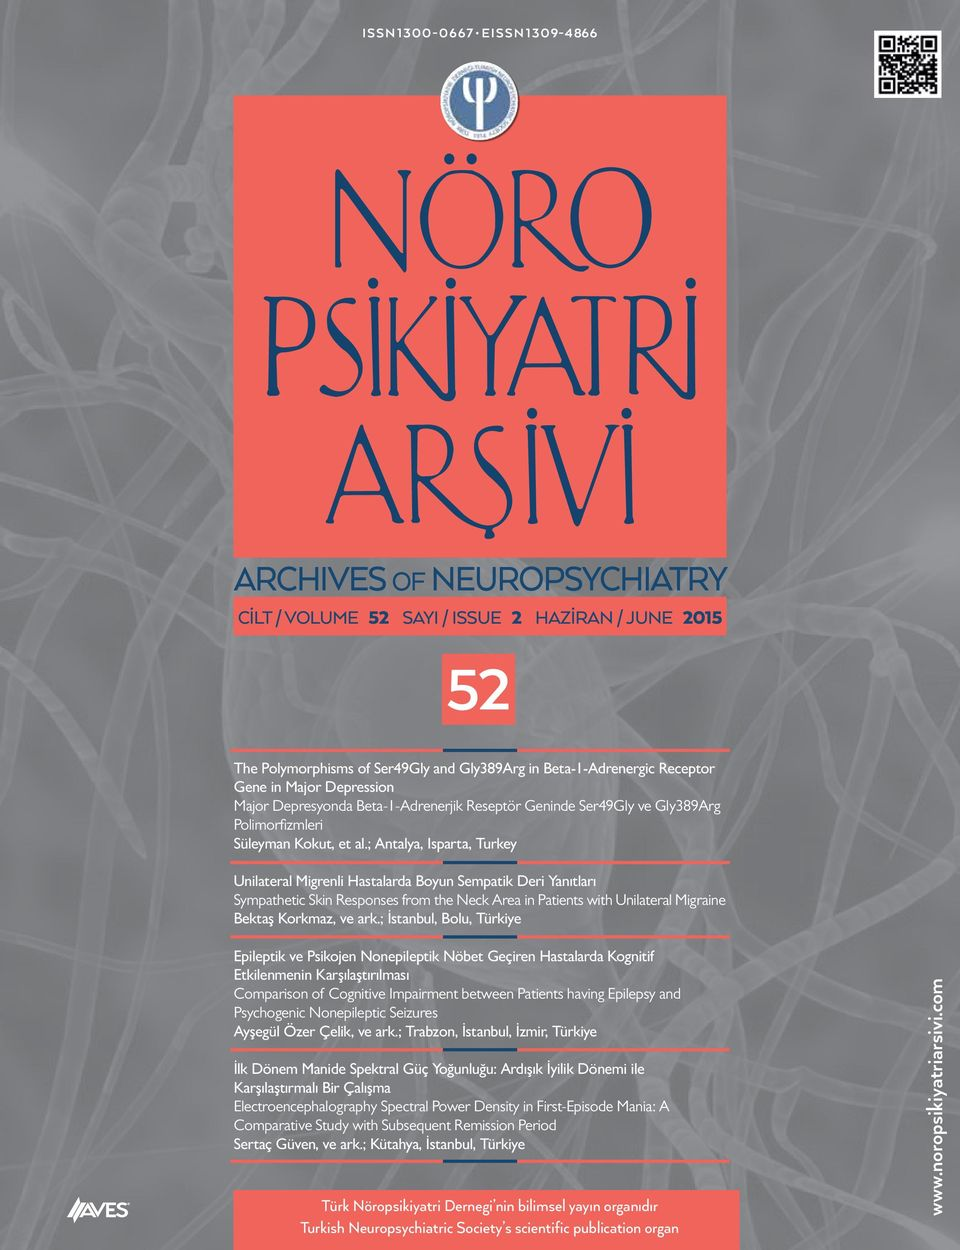 ; Antalya, Isparta, Turkey Unilateral Migrenli Hastalarda Boyun Sempatik Deri Yanıtları Sympathetic Skin Responses from the Neck Area in Patients with Unilateral Migraine Bektaş Korkmaz, ve ark.